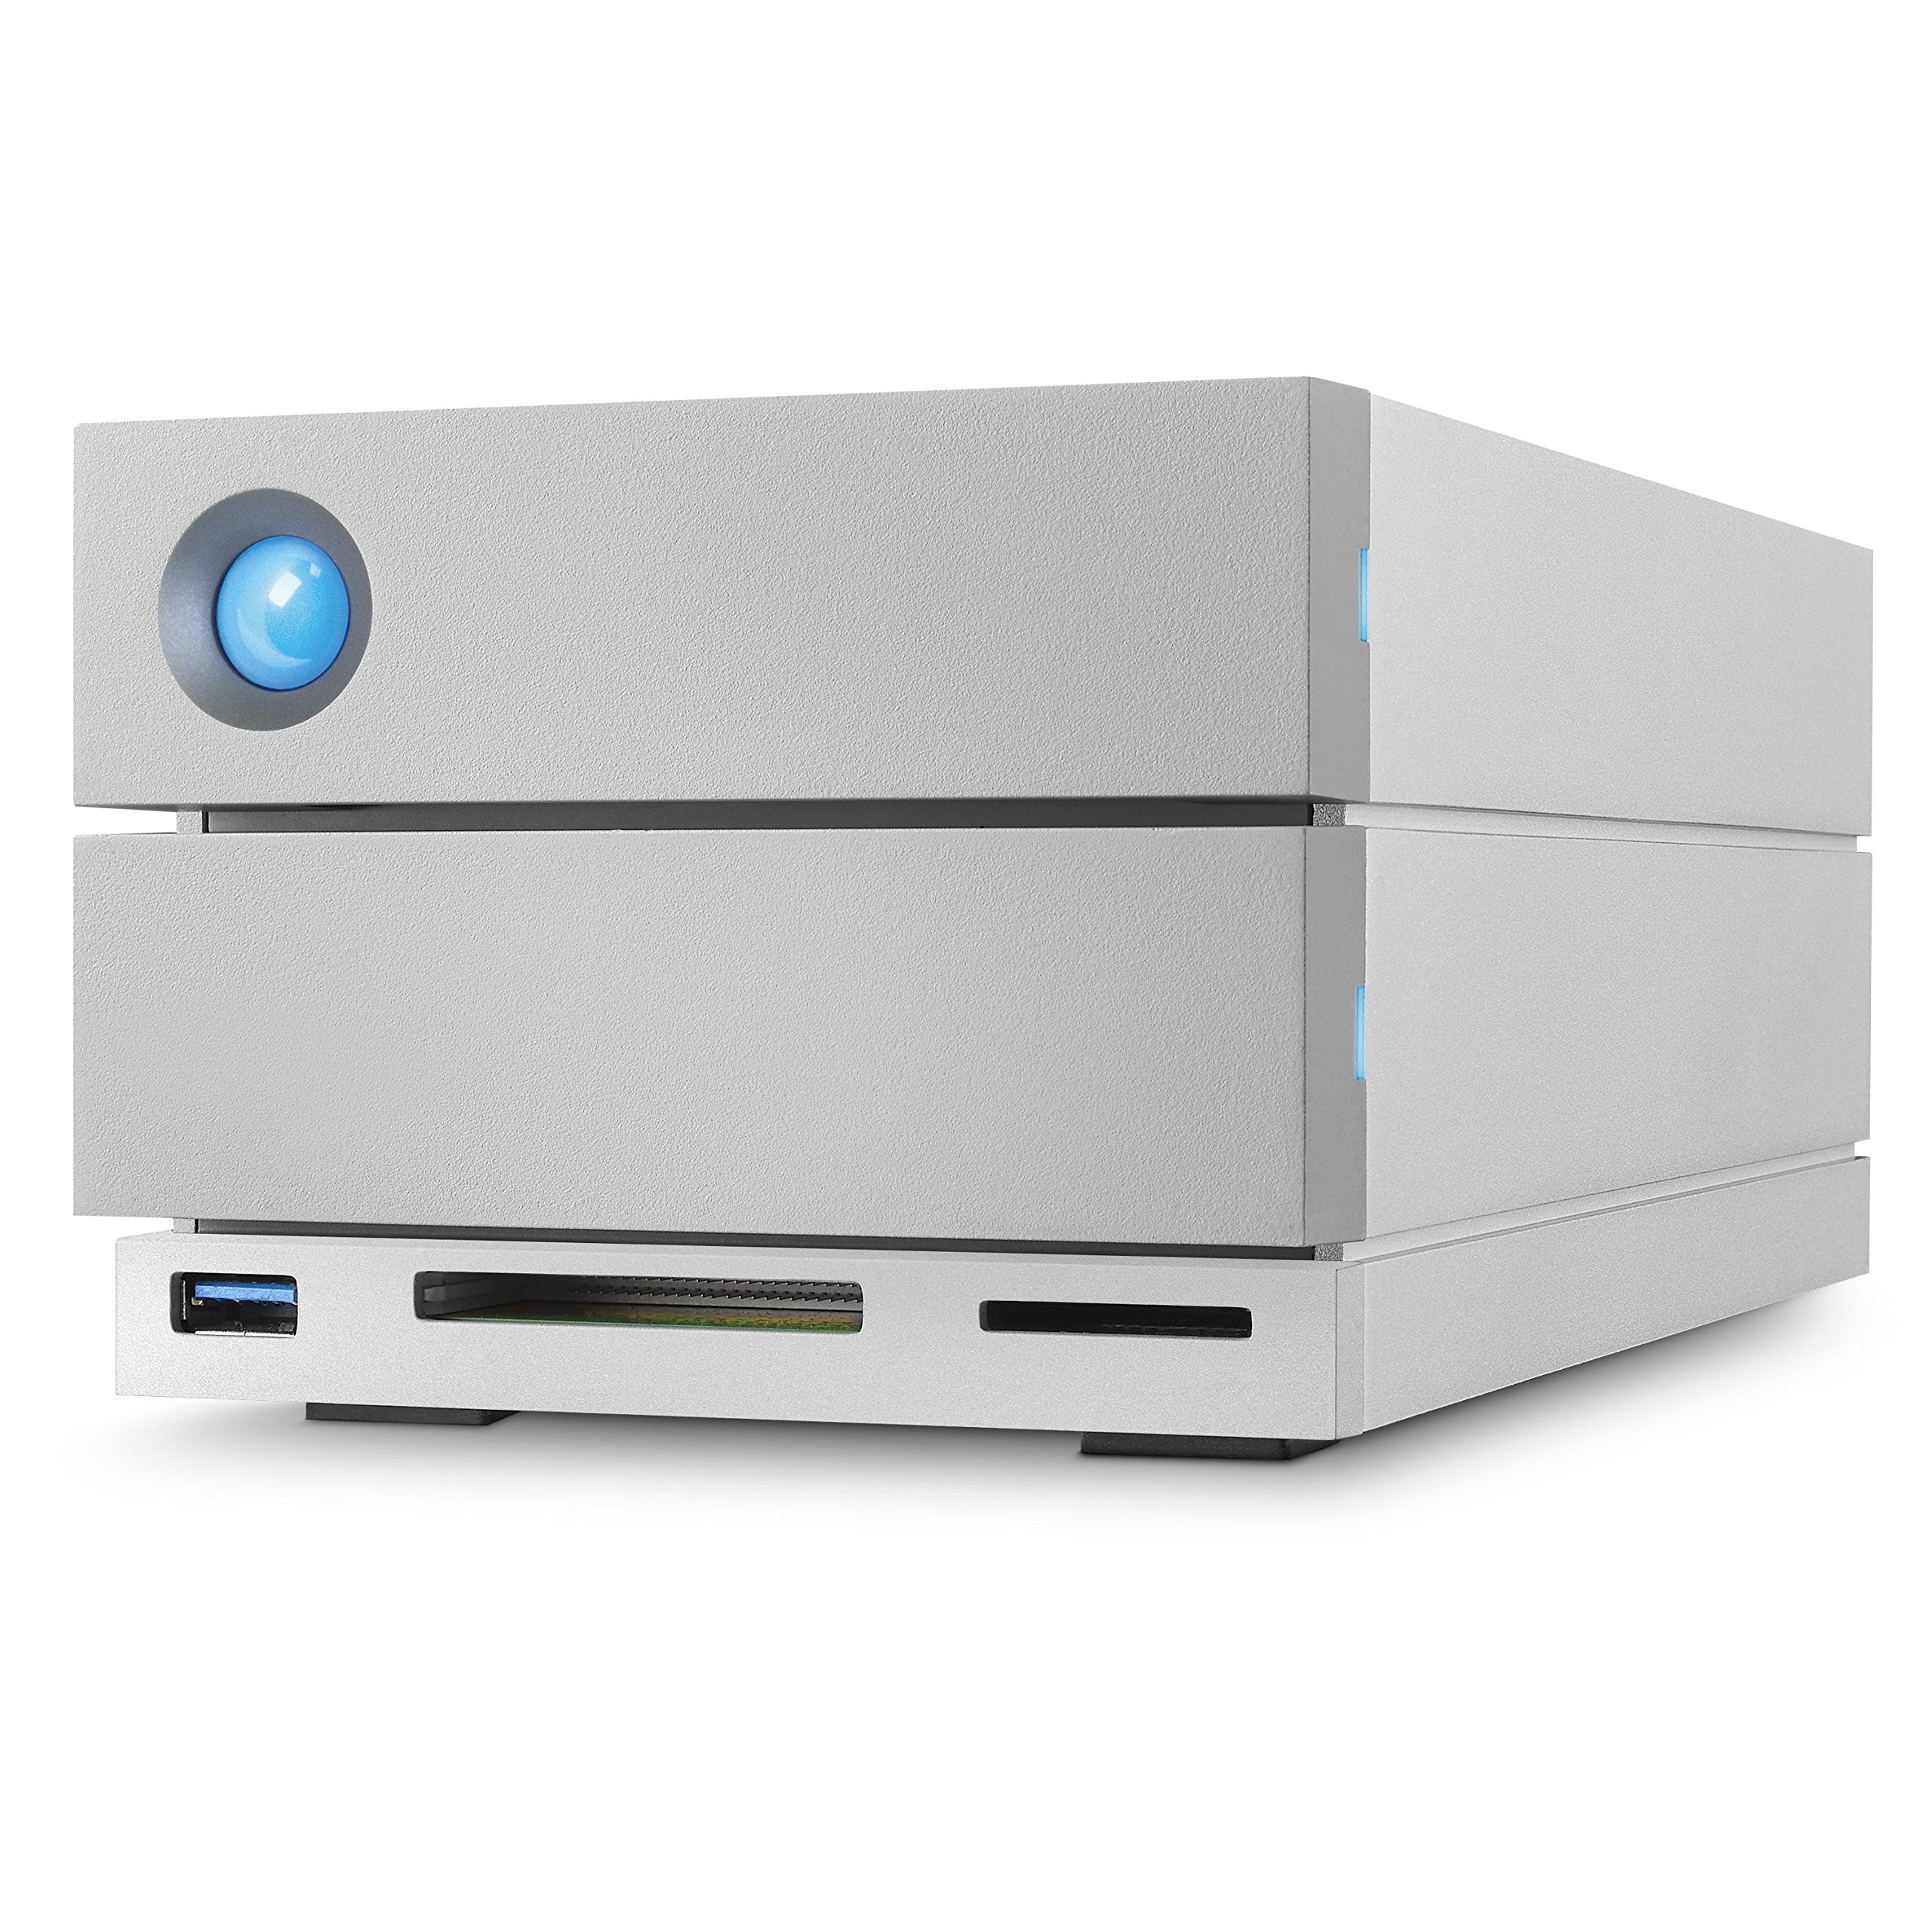 LaCie 2big Dock Thunderbolt 3 20TB (stgb20000400) by LaCie